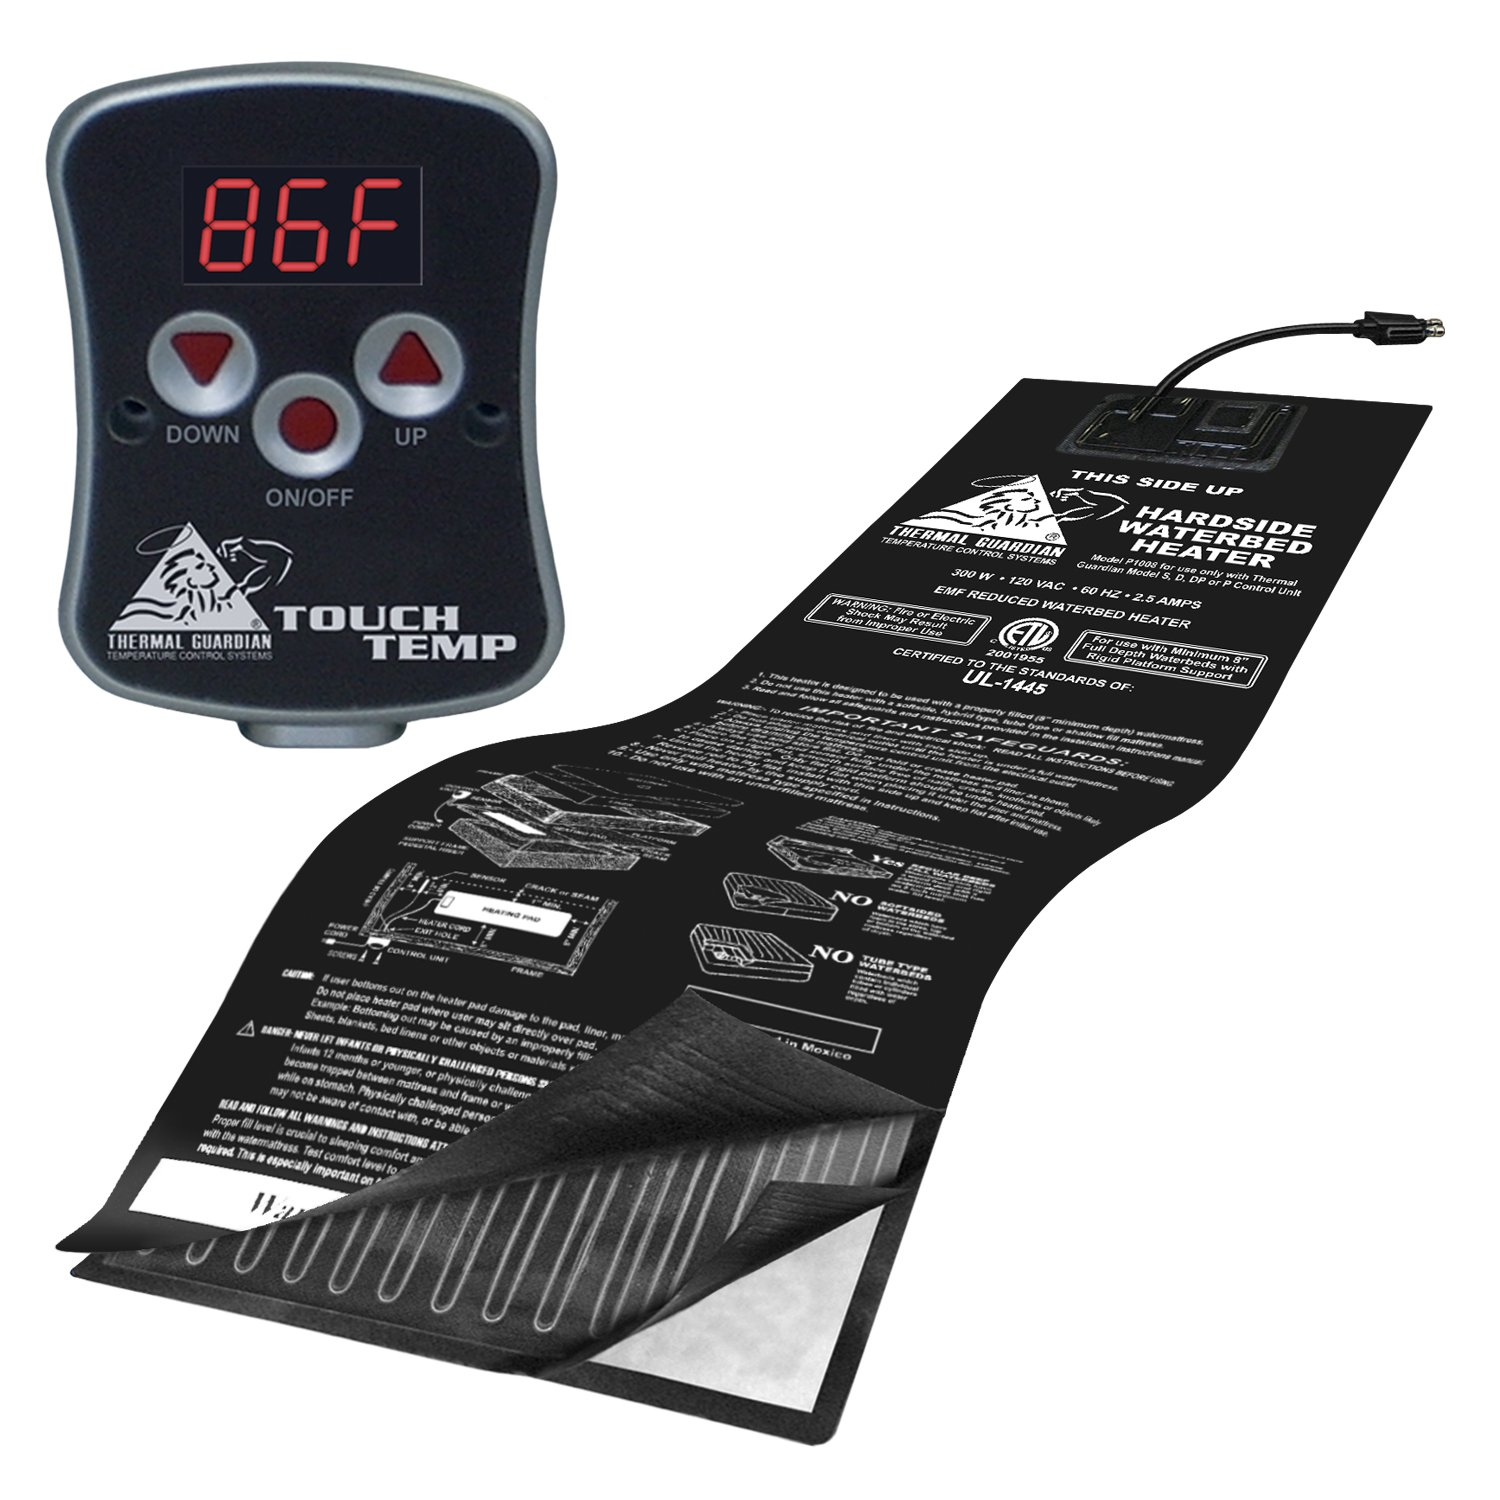 INNOMAX Thermal Guardian Touch Temp Solid State Waterbed Heater, Full Watt